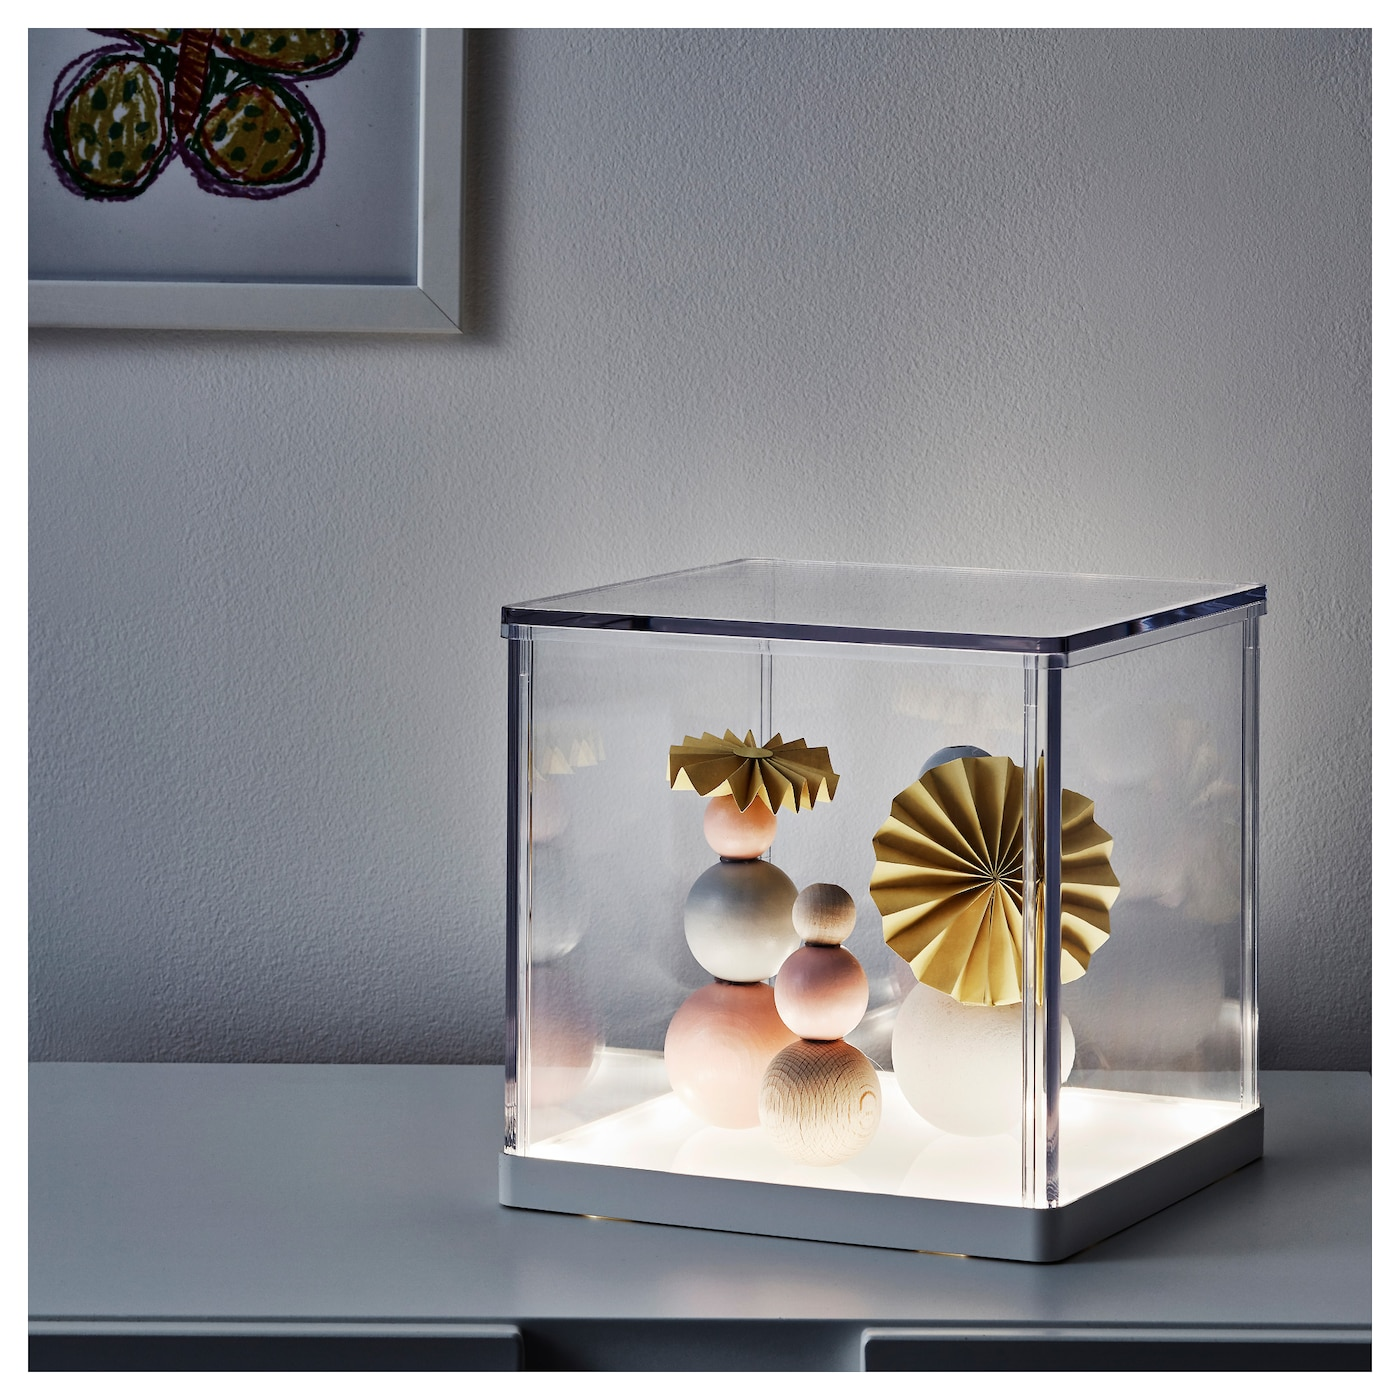 Synas led lighting box transparent 24x24x24 cm ikea for Leuchtkasten ikea